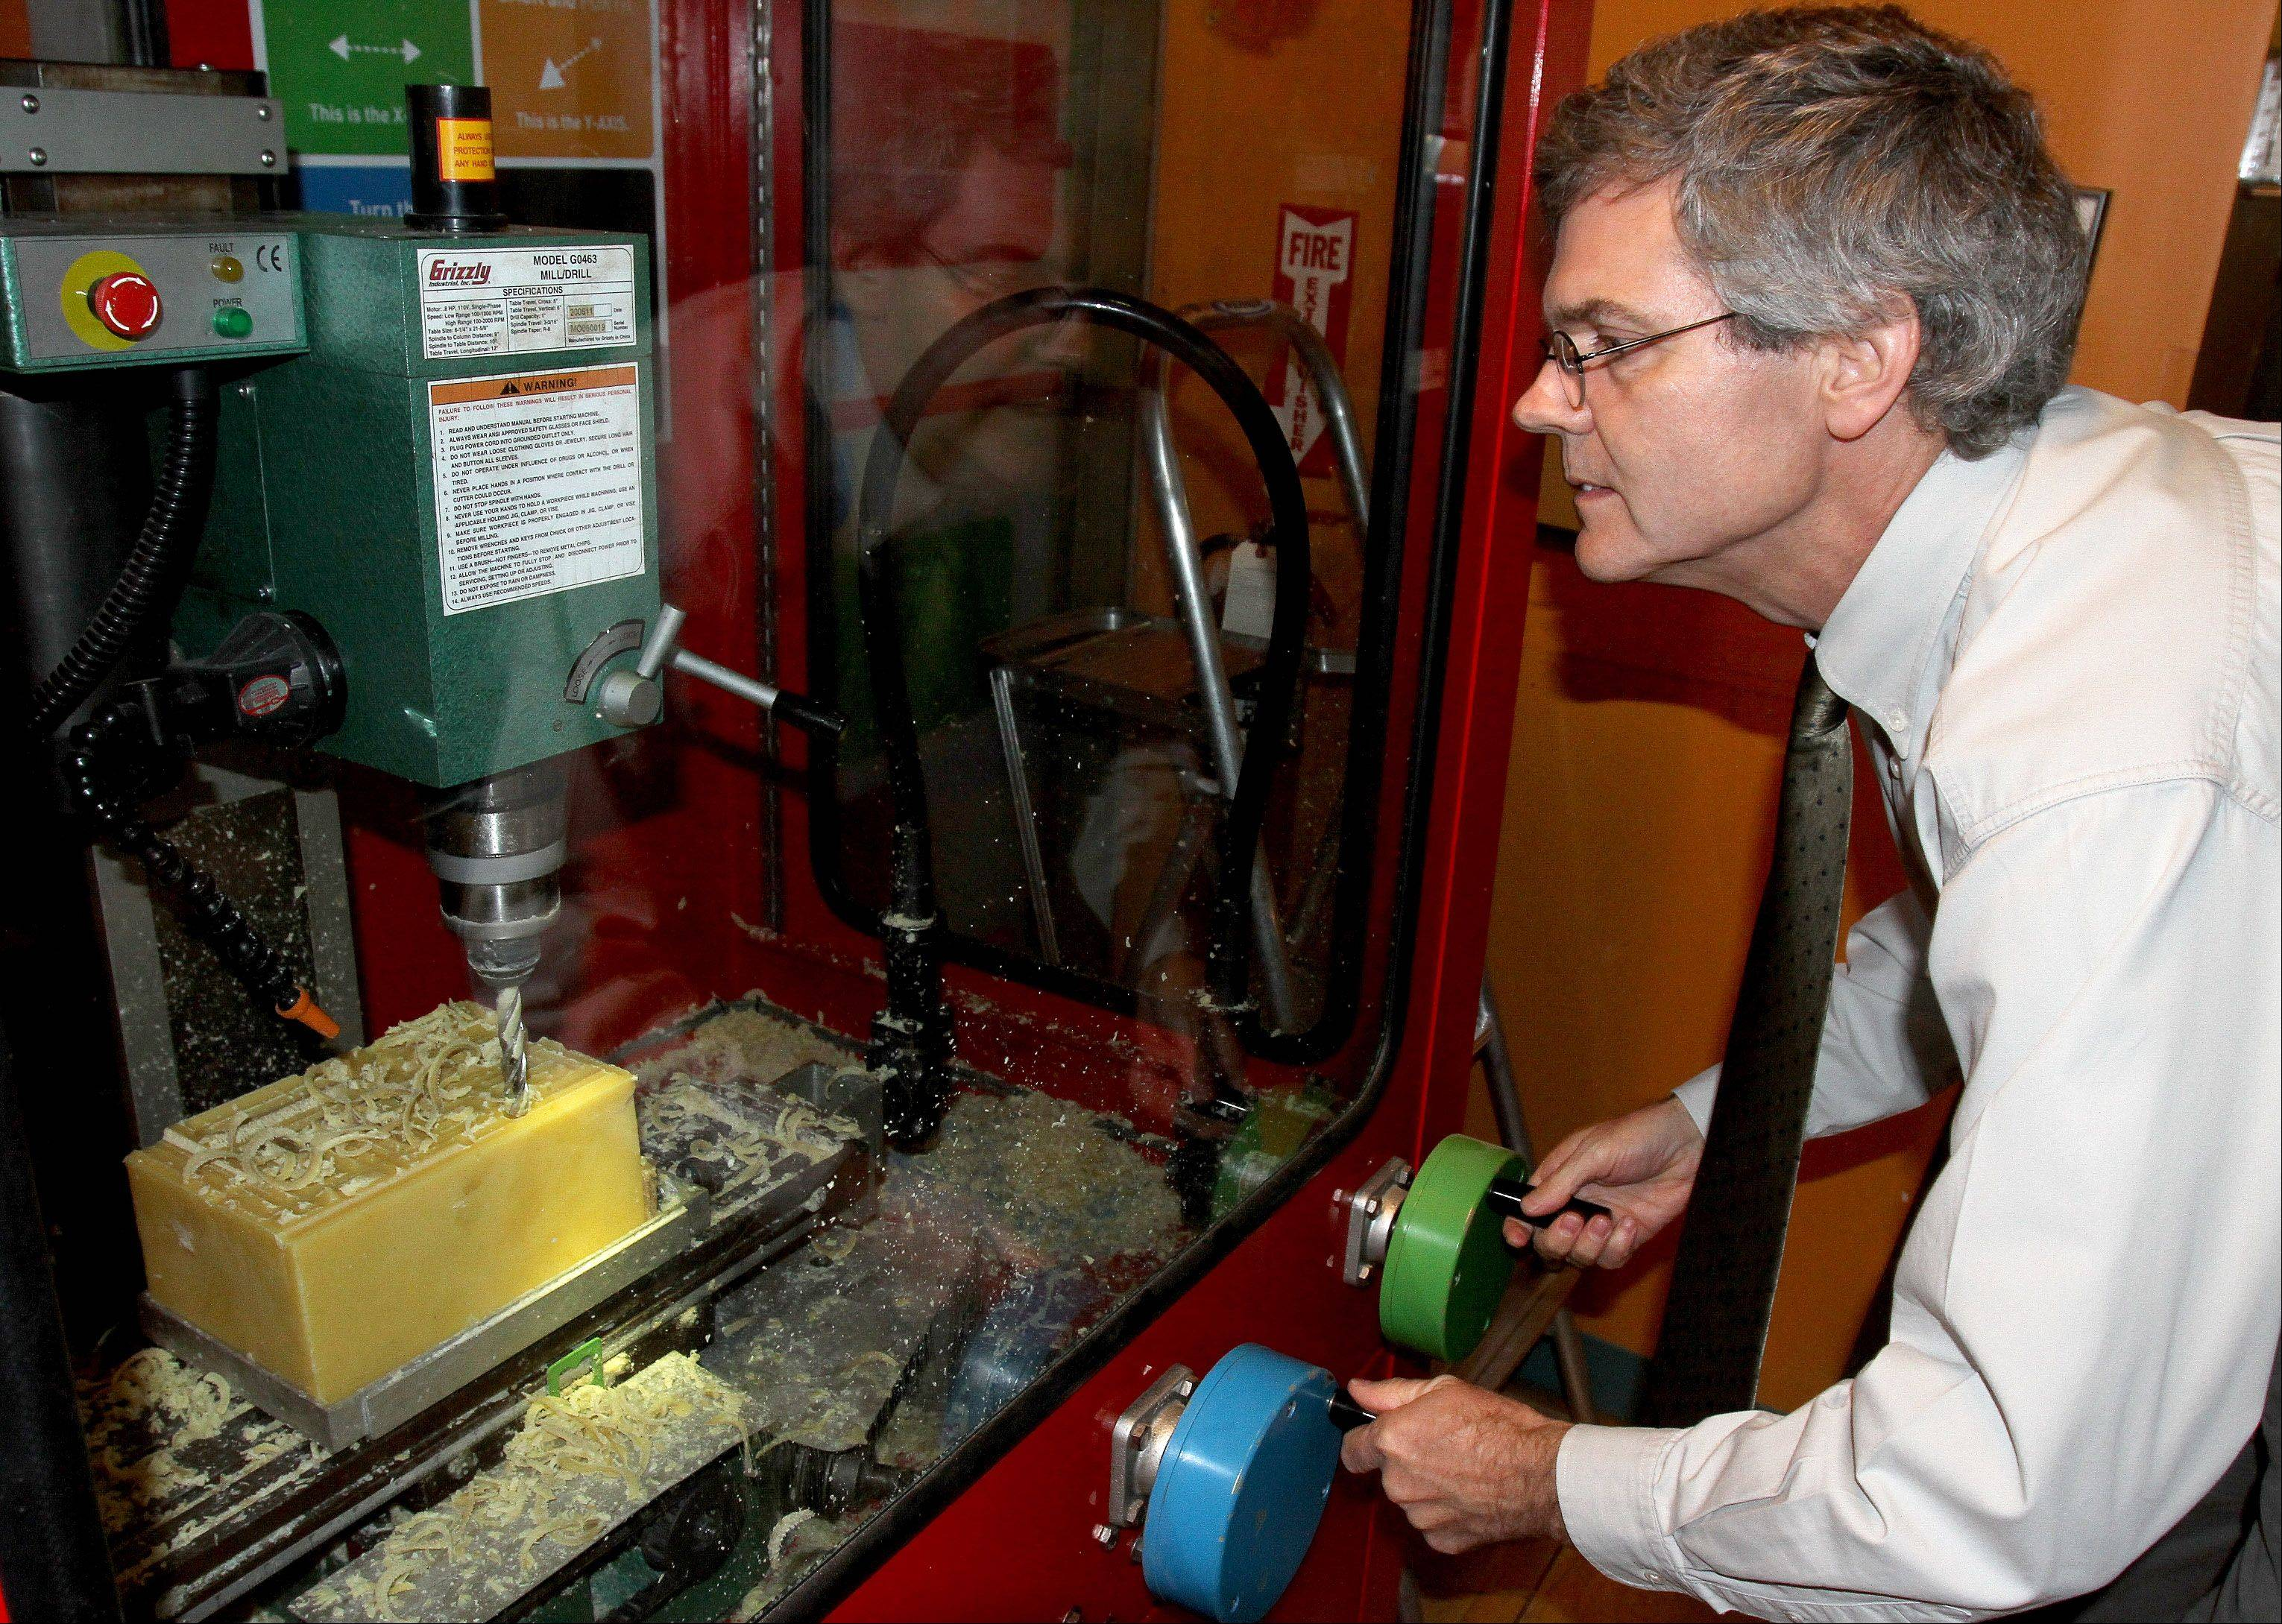 Peter Crabb, director of exhibits, demonstrates a 3-Axis Mill, one of the displays in How People Make Things, visiting through January at the DuPage Children's Museum.